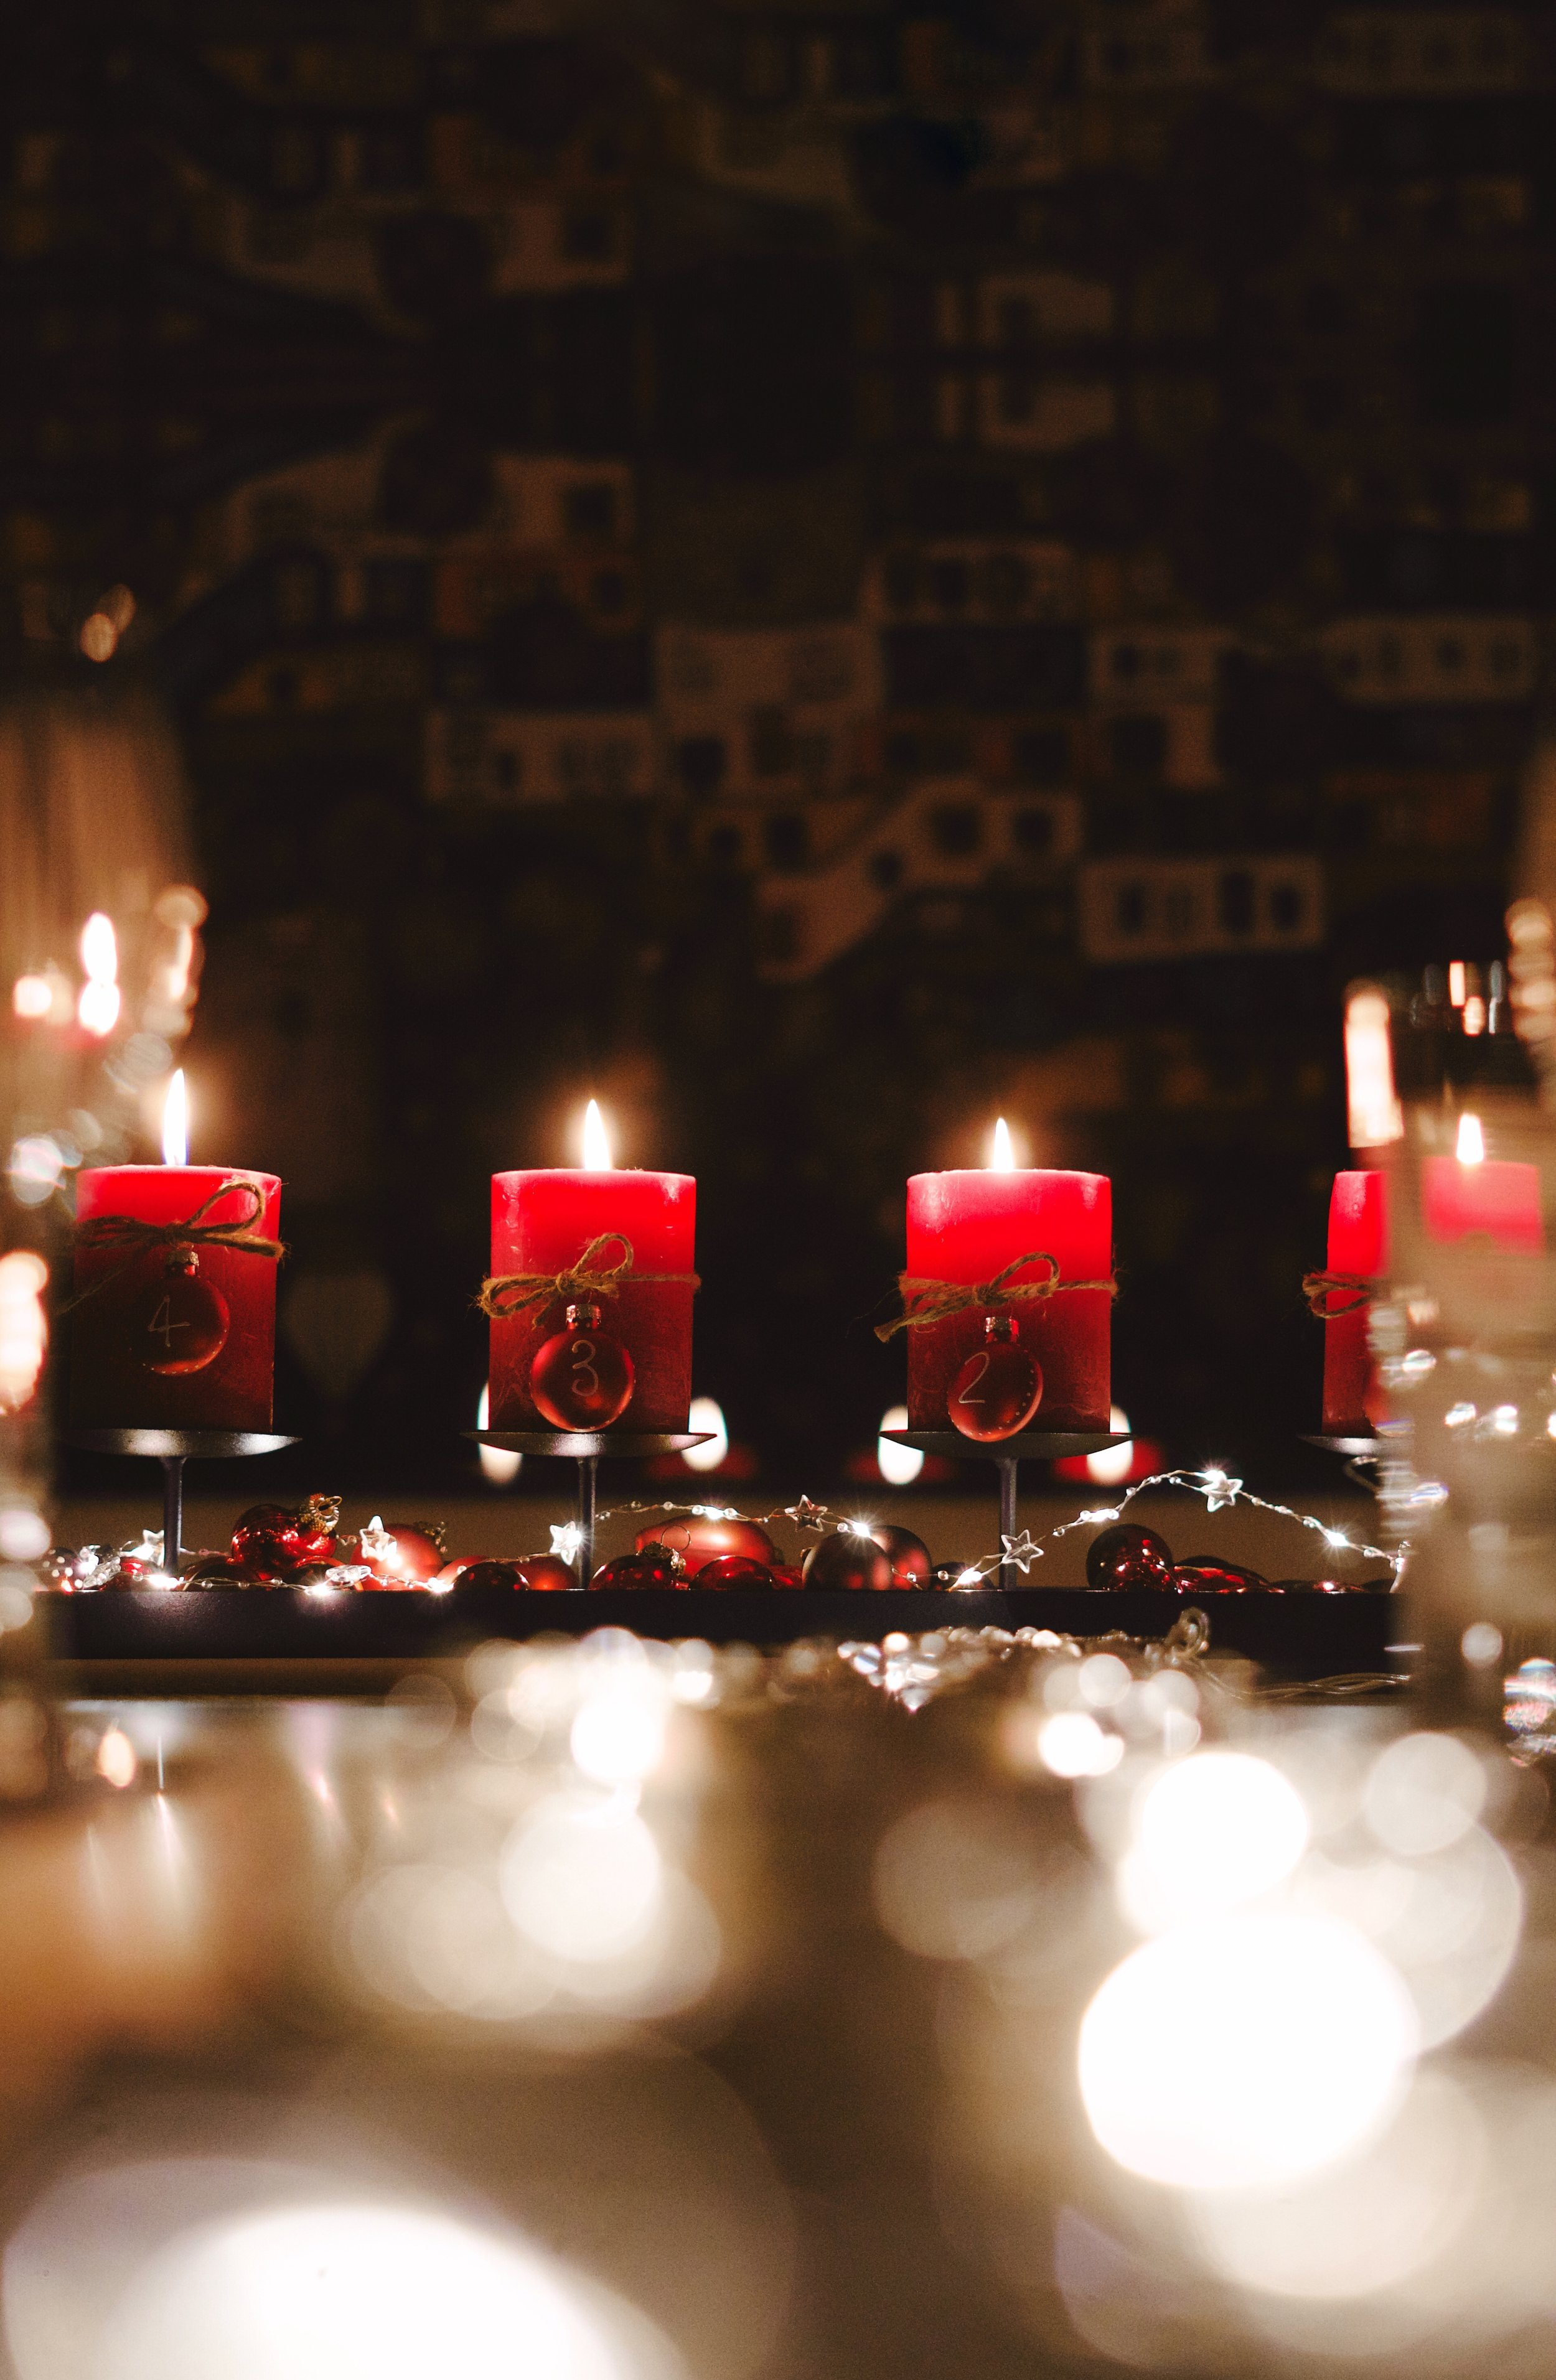 holiday candles - could they be dangerous?